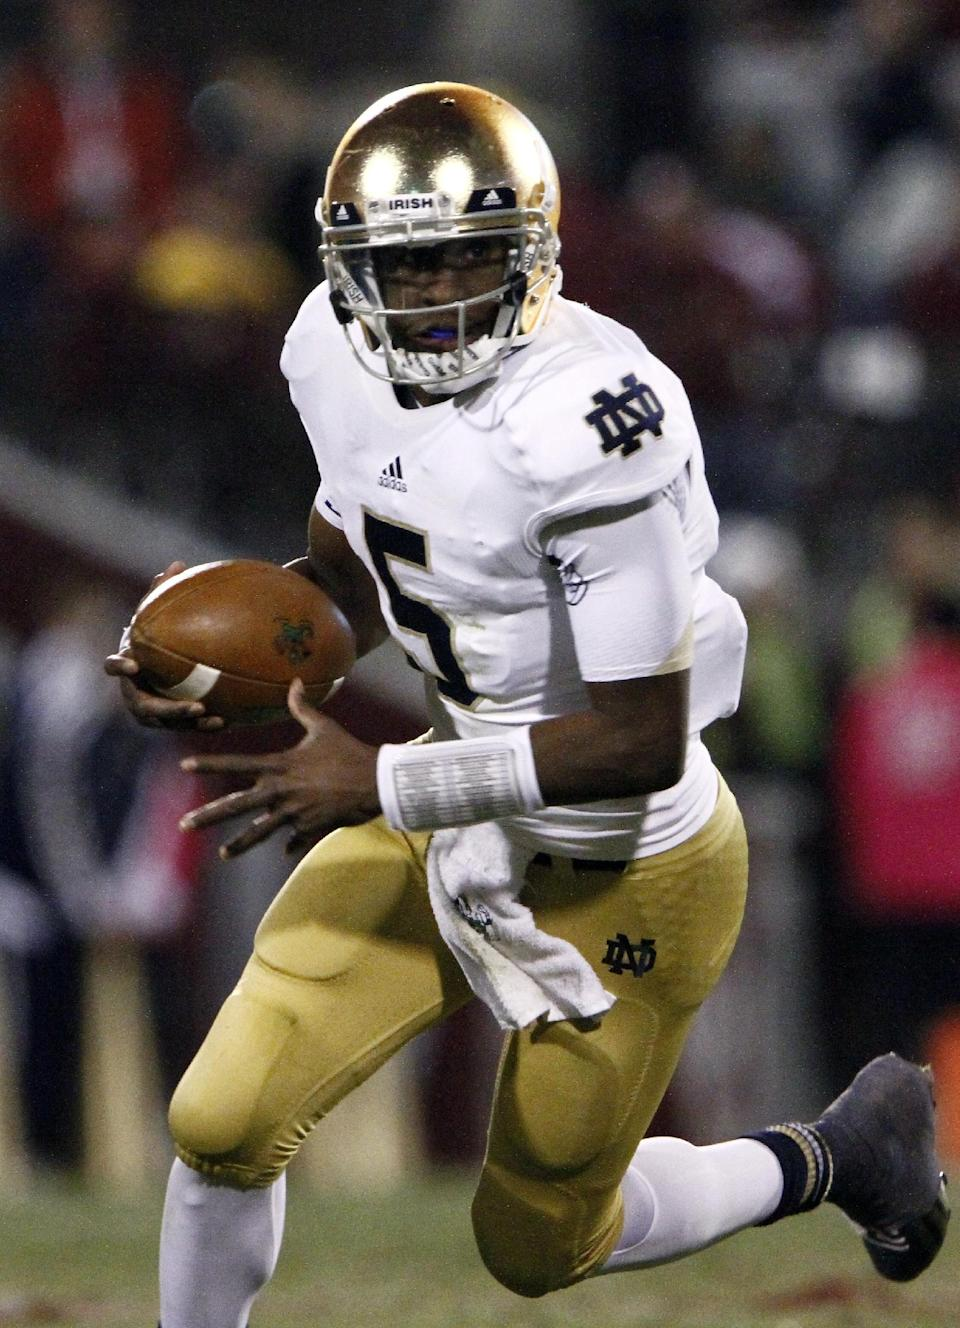 Notre Dame quarterback Everett Golson (5) runs the ball against Oklahoma during the first quarter of an NCAA college football game in Norman, Okla., Saturday, Oct. 27, 2012.  (AP Photo/Alonzo Adams)